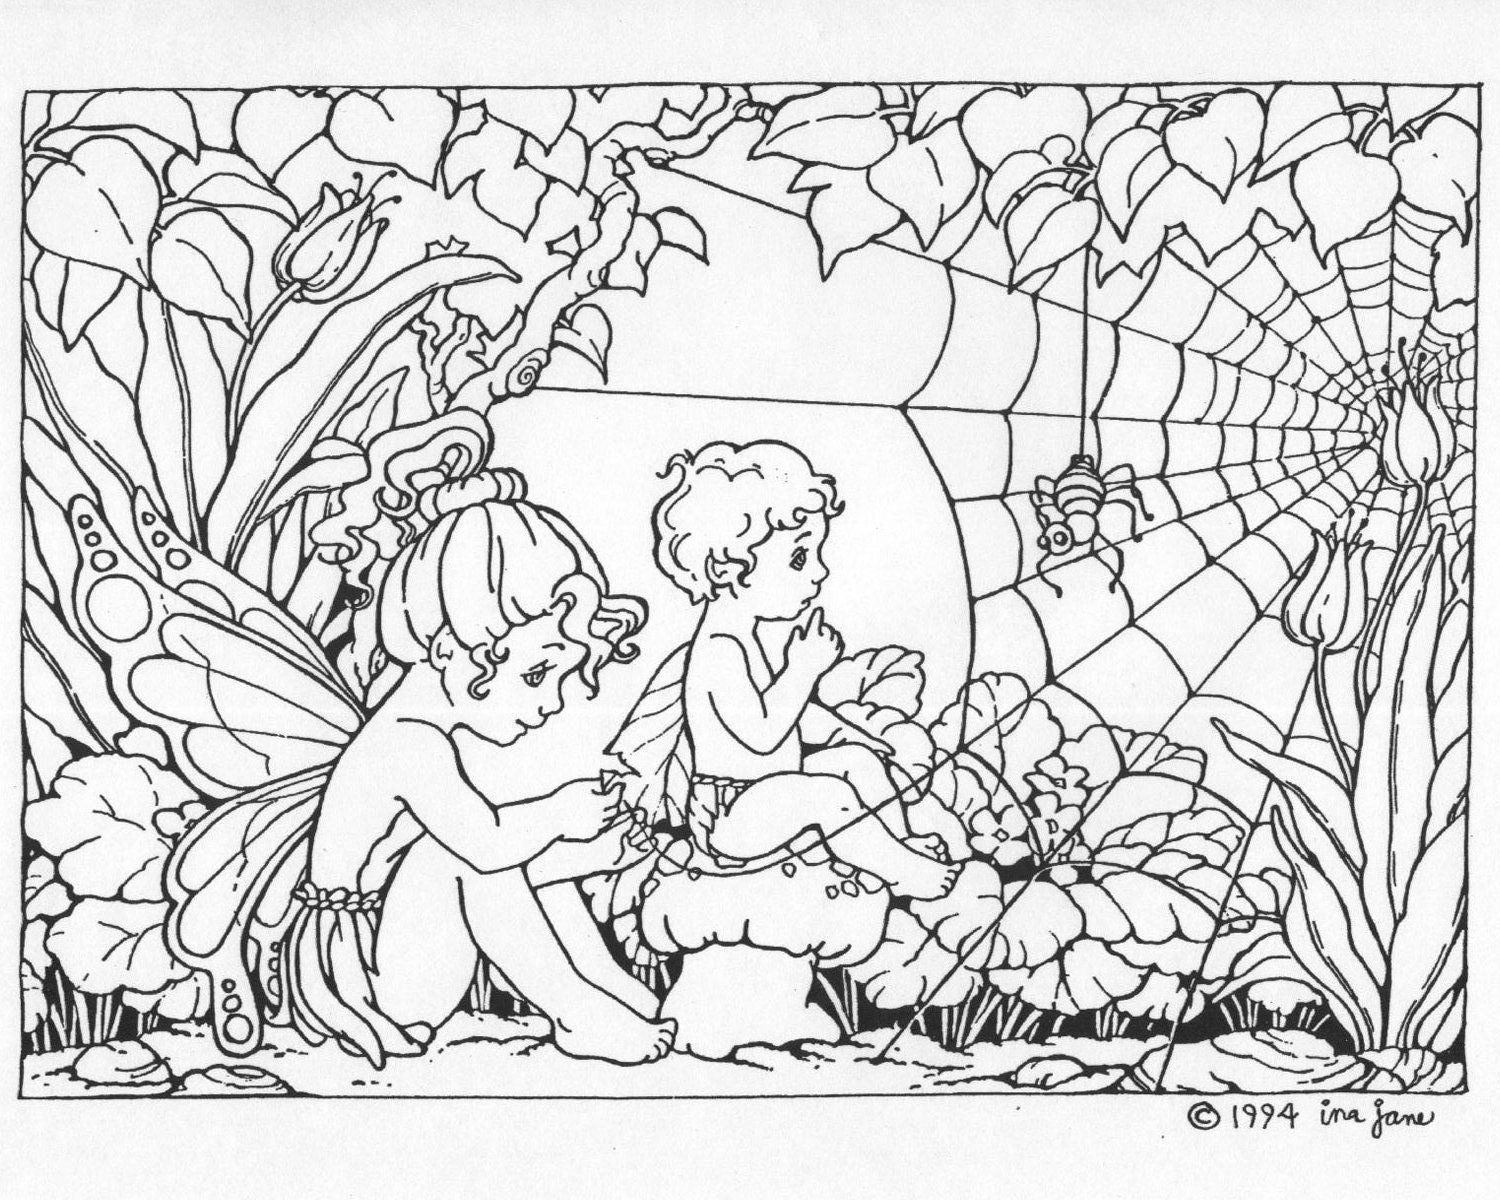 coloring activities adults : Printable Fairy Coloring Pages Adults Colorine Net 25411